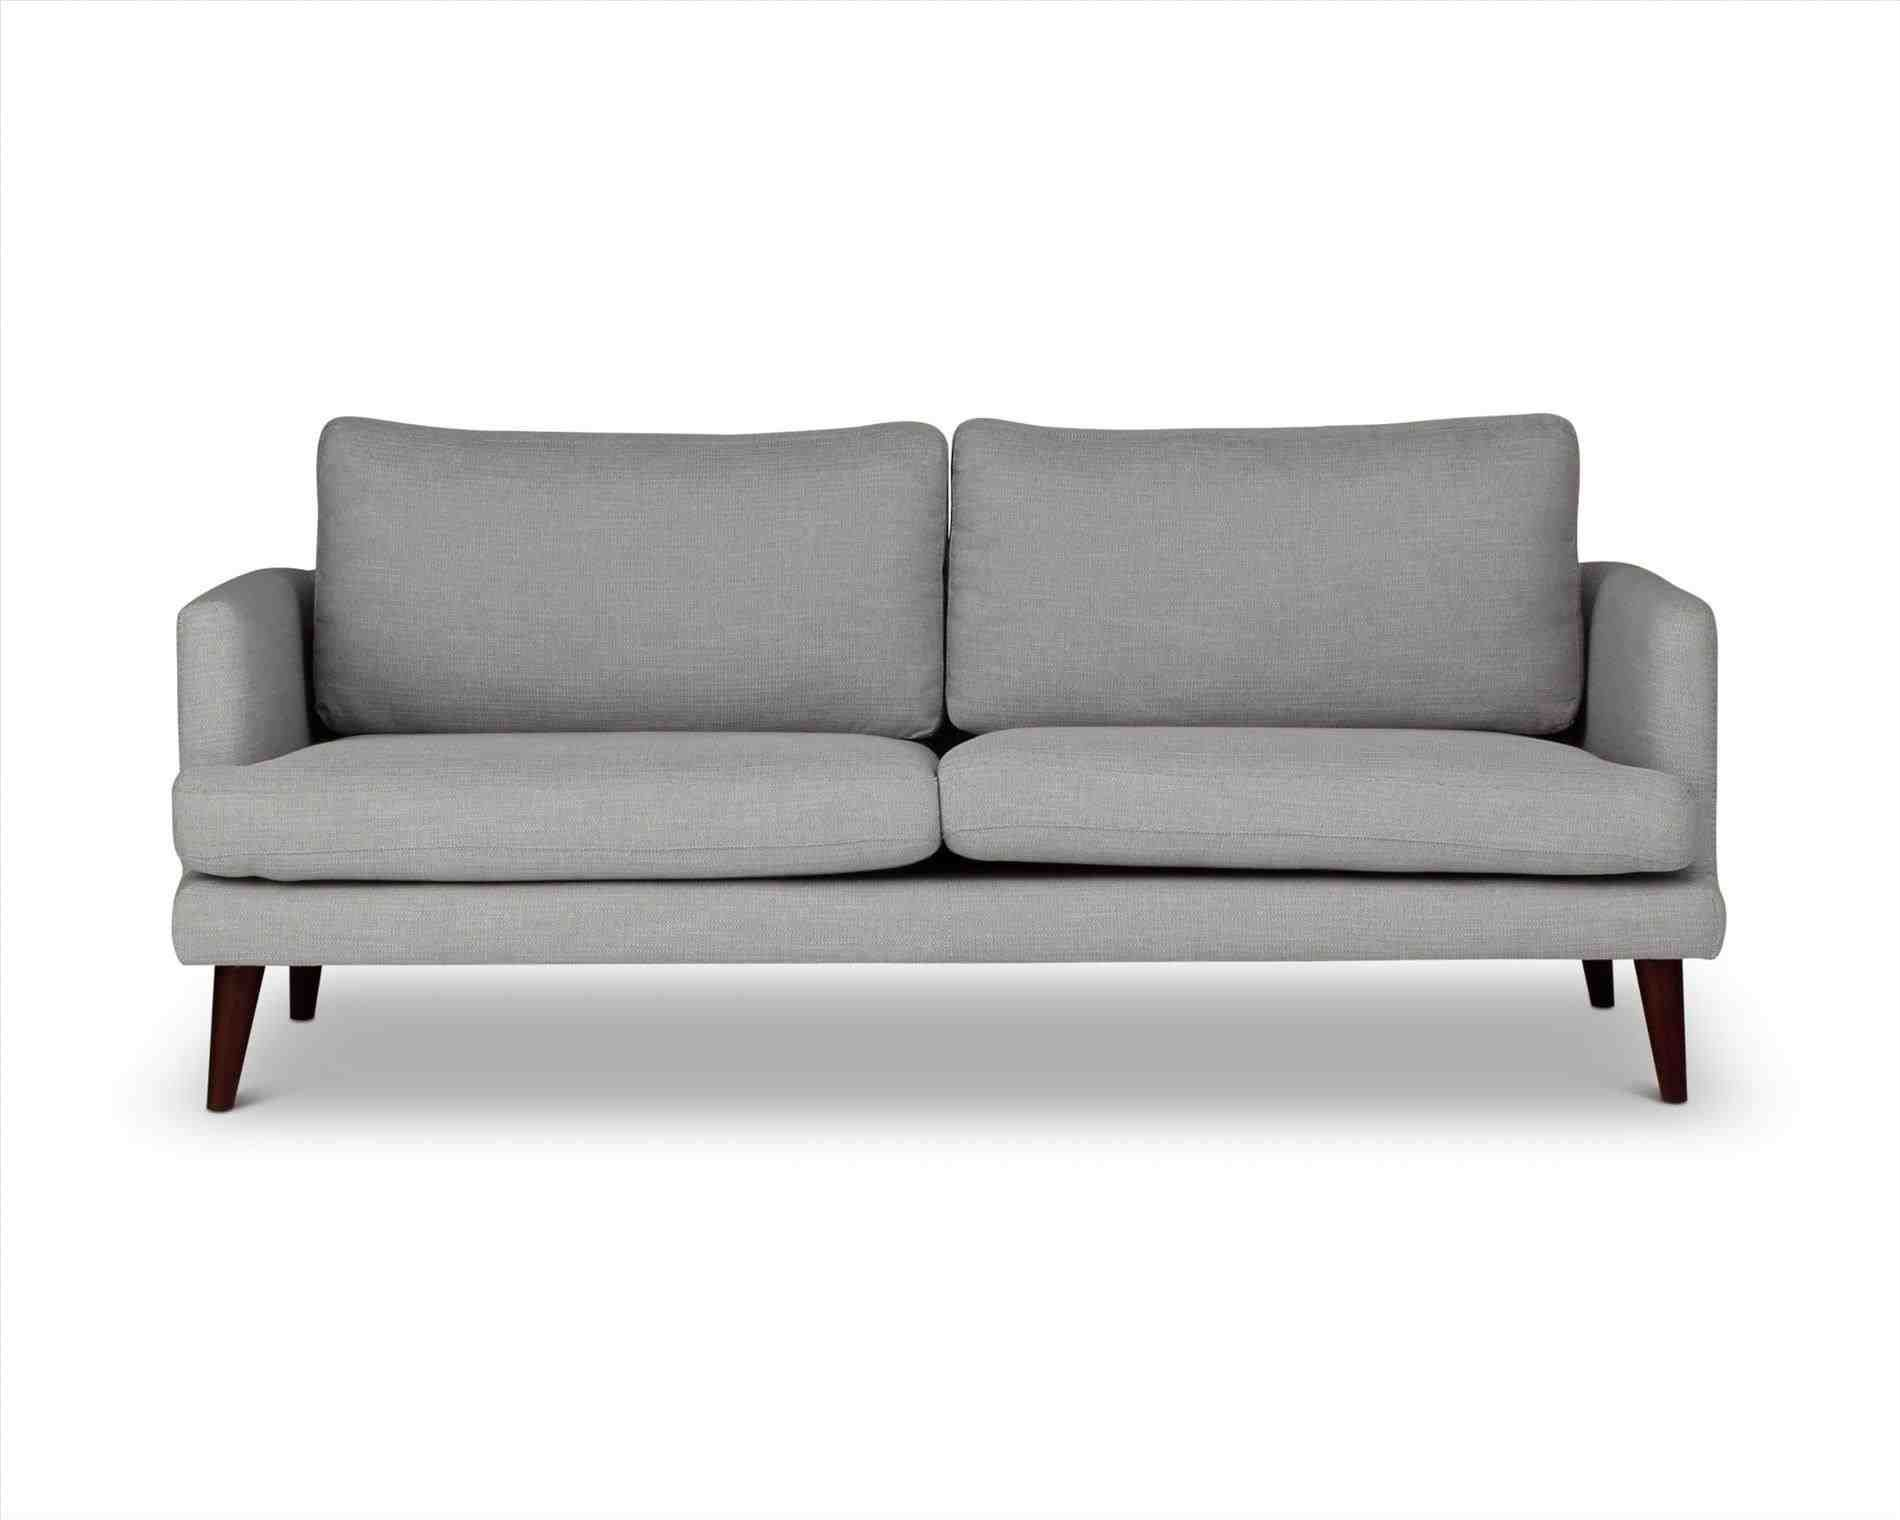 Sofa Bed Sydney Le Melbourne Corner Argos Leather